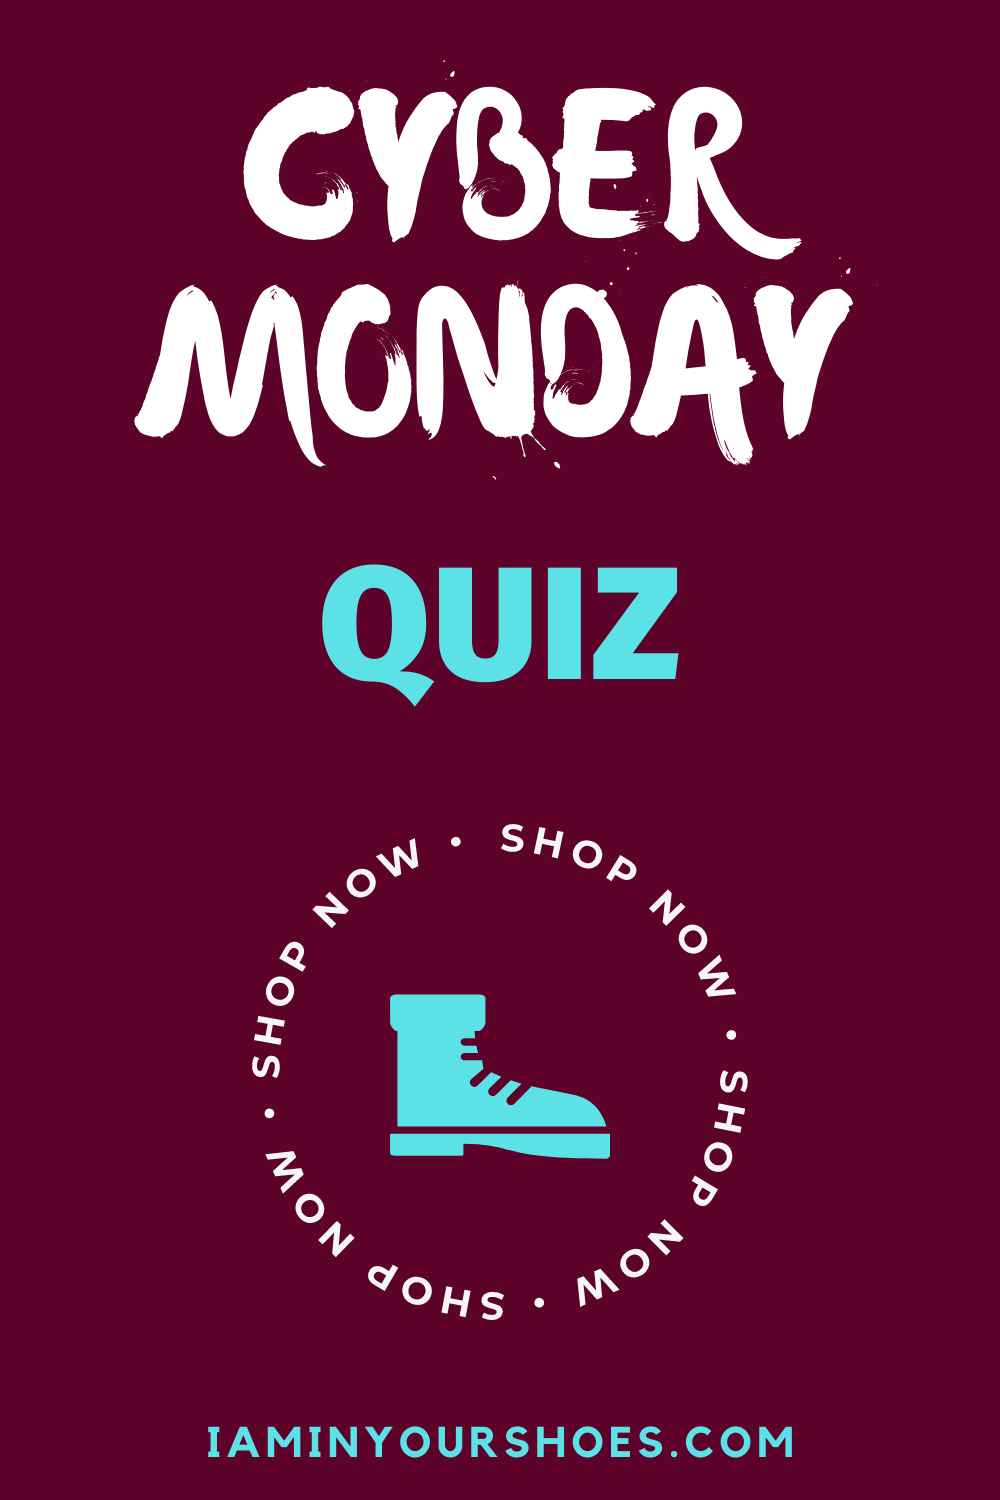 """Cyber Monday quiz will beam you up to the online world of shopping and discounts. Black Friday is for """"offliners"""". Cyber Monday is for the people who don't walk to buy tons of stuff. So, this Cyber Monday quiz will question your general knowledge about this online shopping festival. Let's start! #CyberMonday #CyberMondayQuiz"""